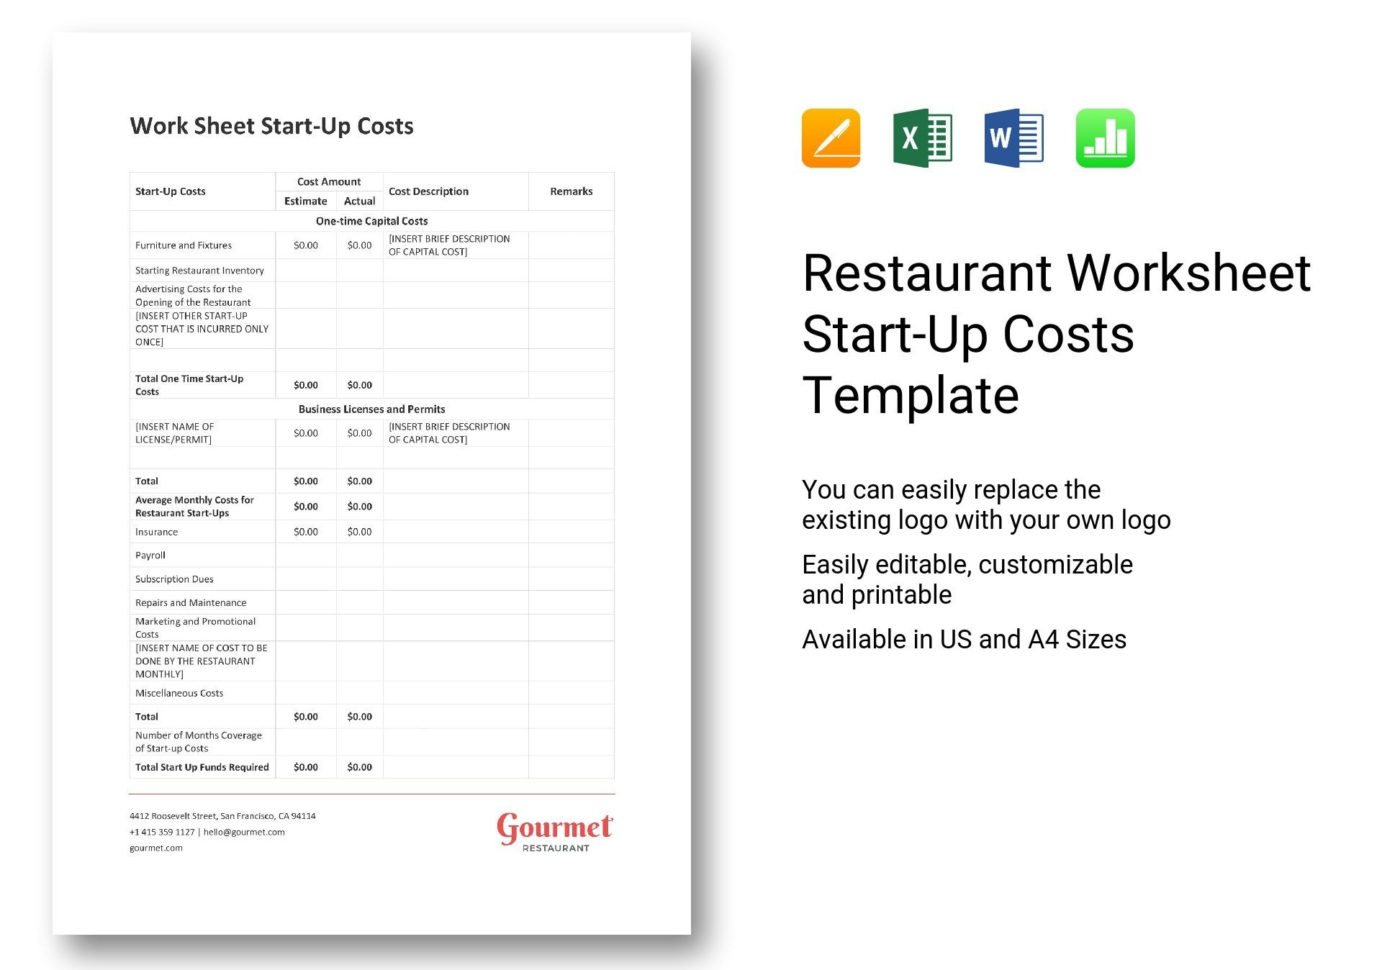 Restaurant Costs Spreadsheet Intended For 020 Template Ideas Restaurant Worksheet Start Up Costs ~ Ulyssesroom